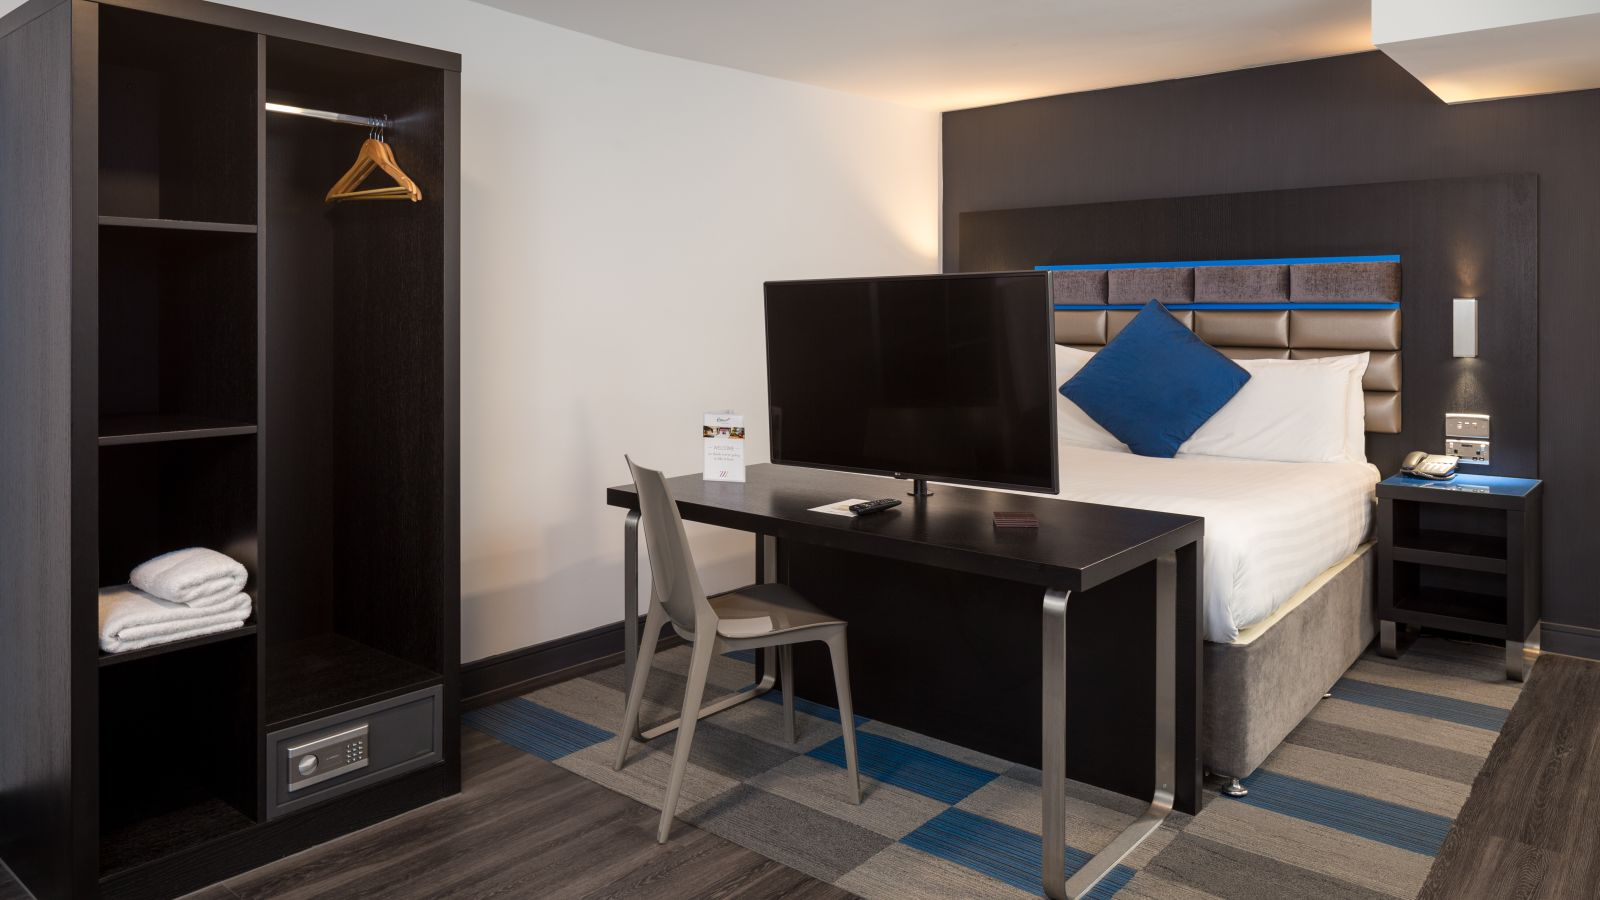 Grande Studio Student Apartment in Chester. King Size Bed, Desk and Safe. IconInc @ Roomzzz